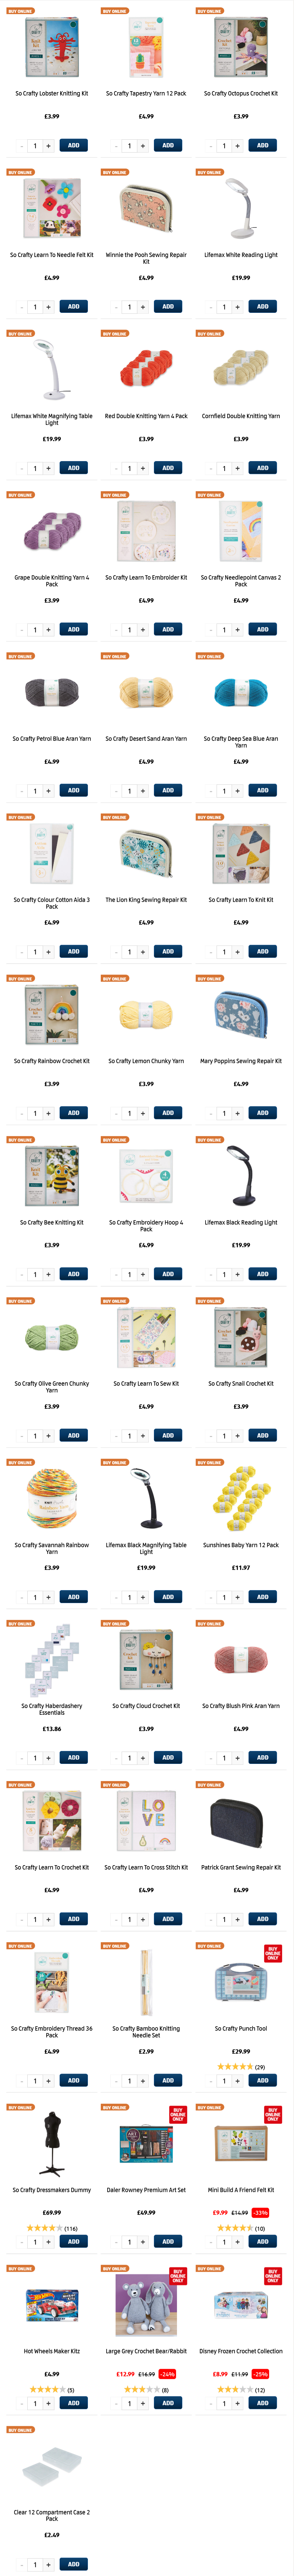 ALDI Hobbies & Crafts from 4th March 2021 ALDI Thursday Offers